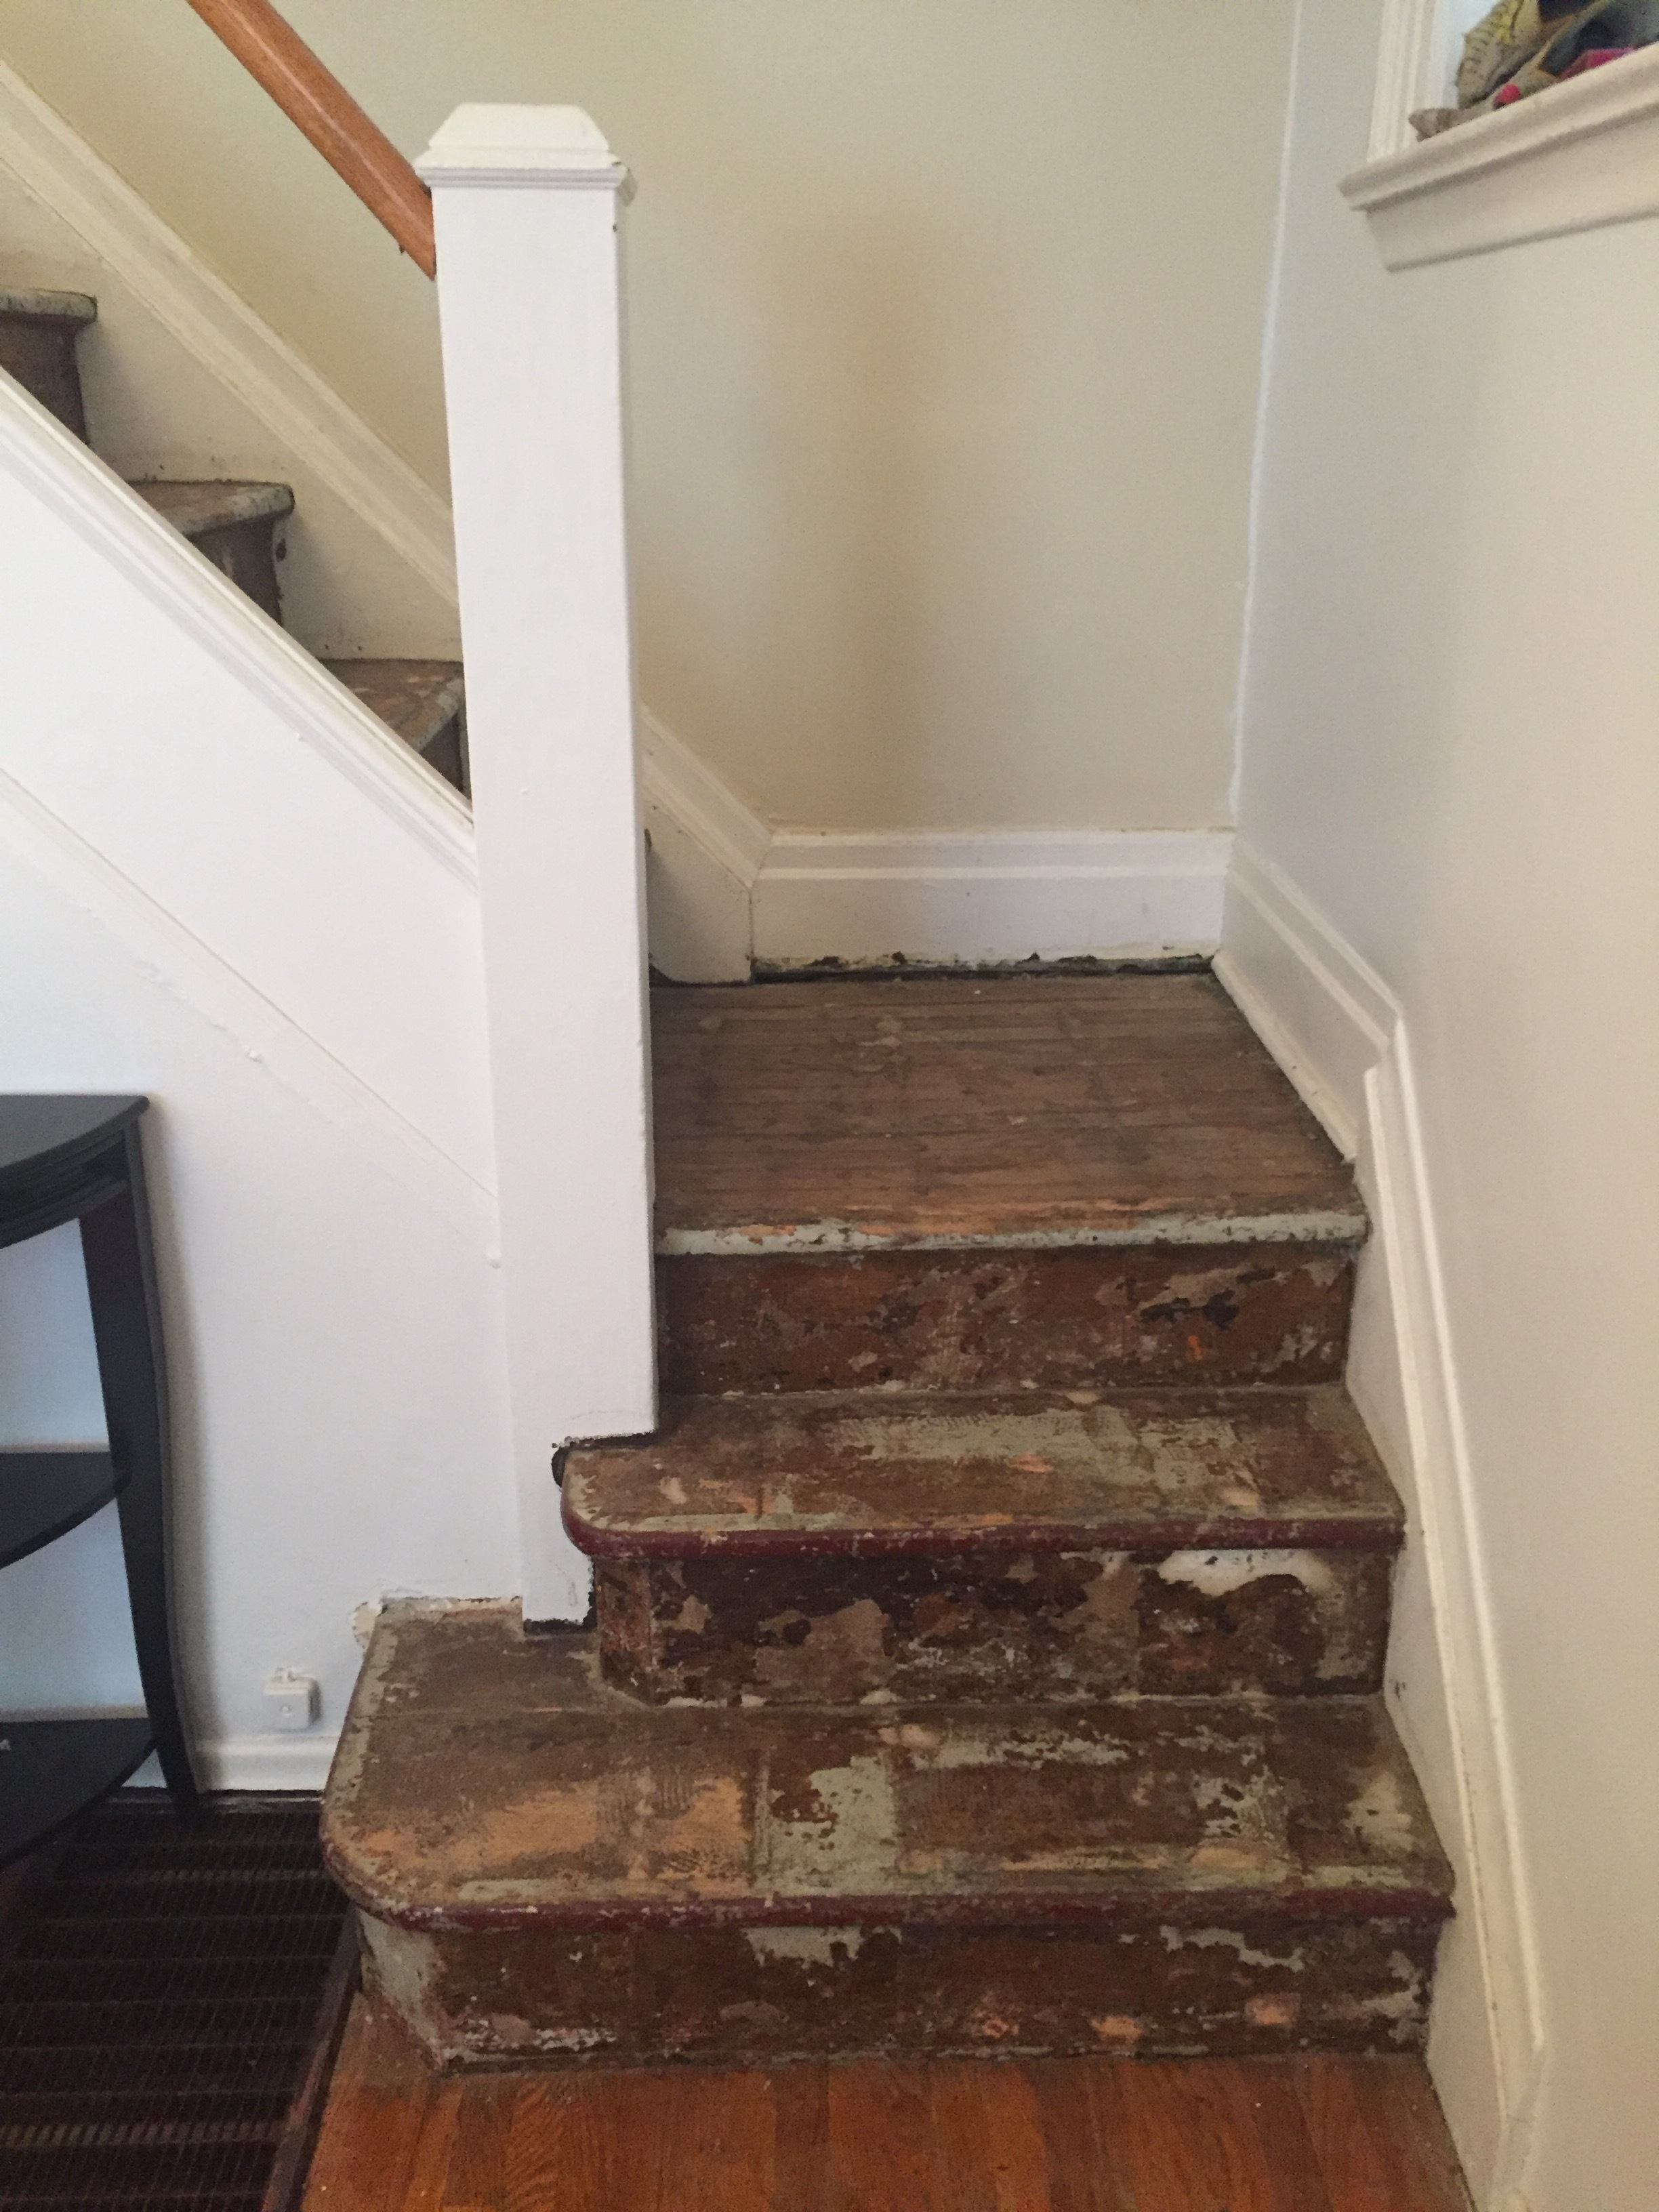 lesley-metcalfe-staircase-carpet-removed-from-bottom.JPG